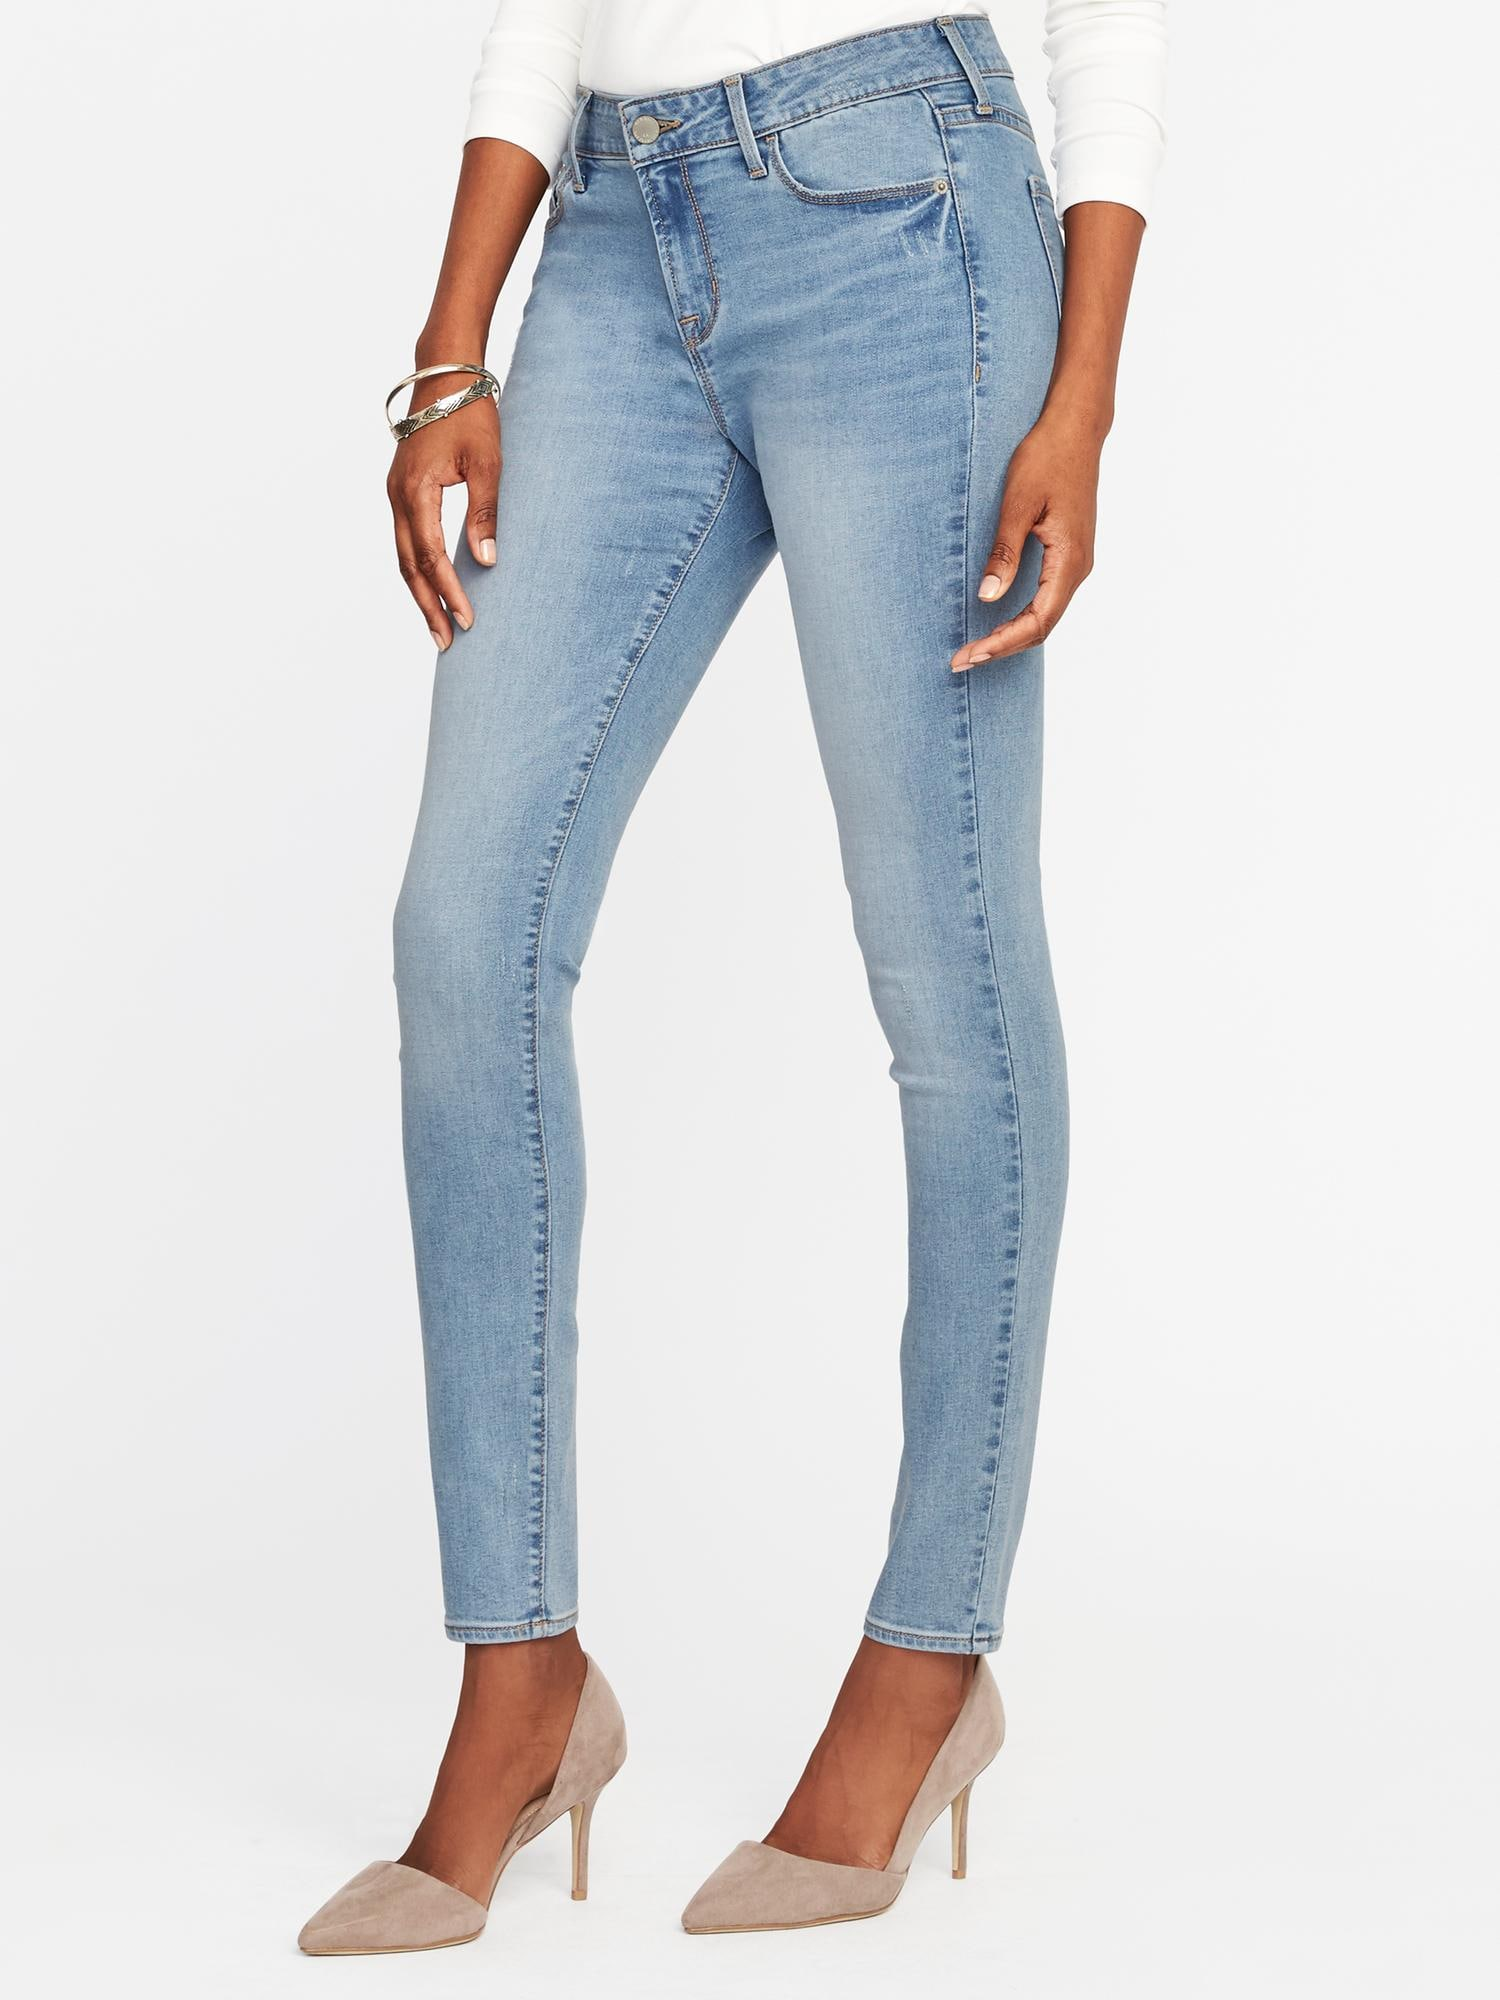 8a5793bdfc6 Mid-Rise Rockstar Super Skinny Jeans for Women | Old Navy